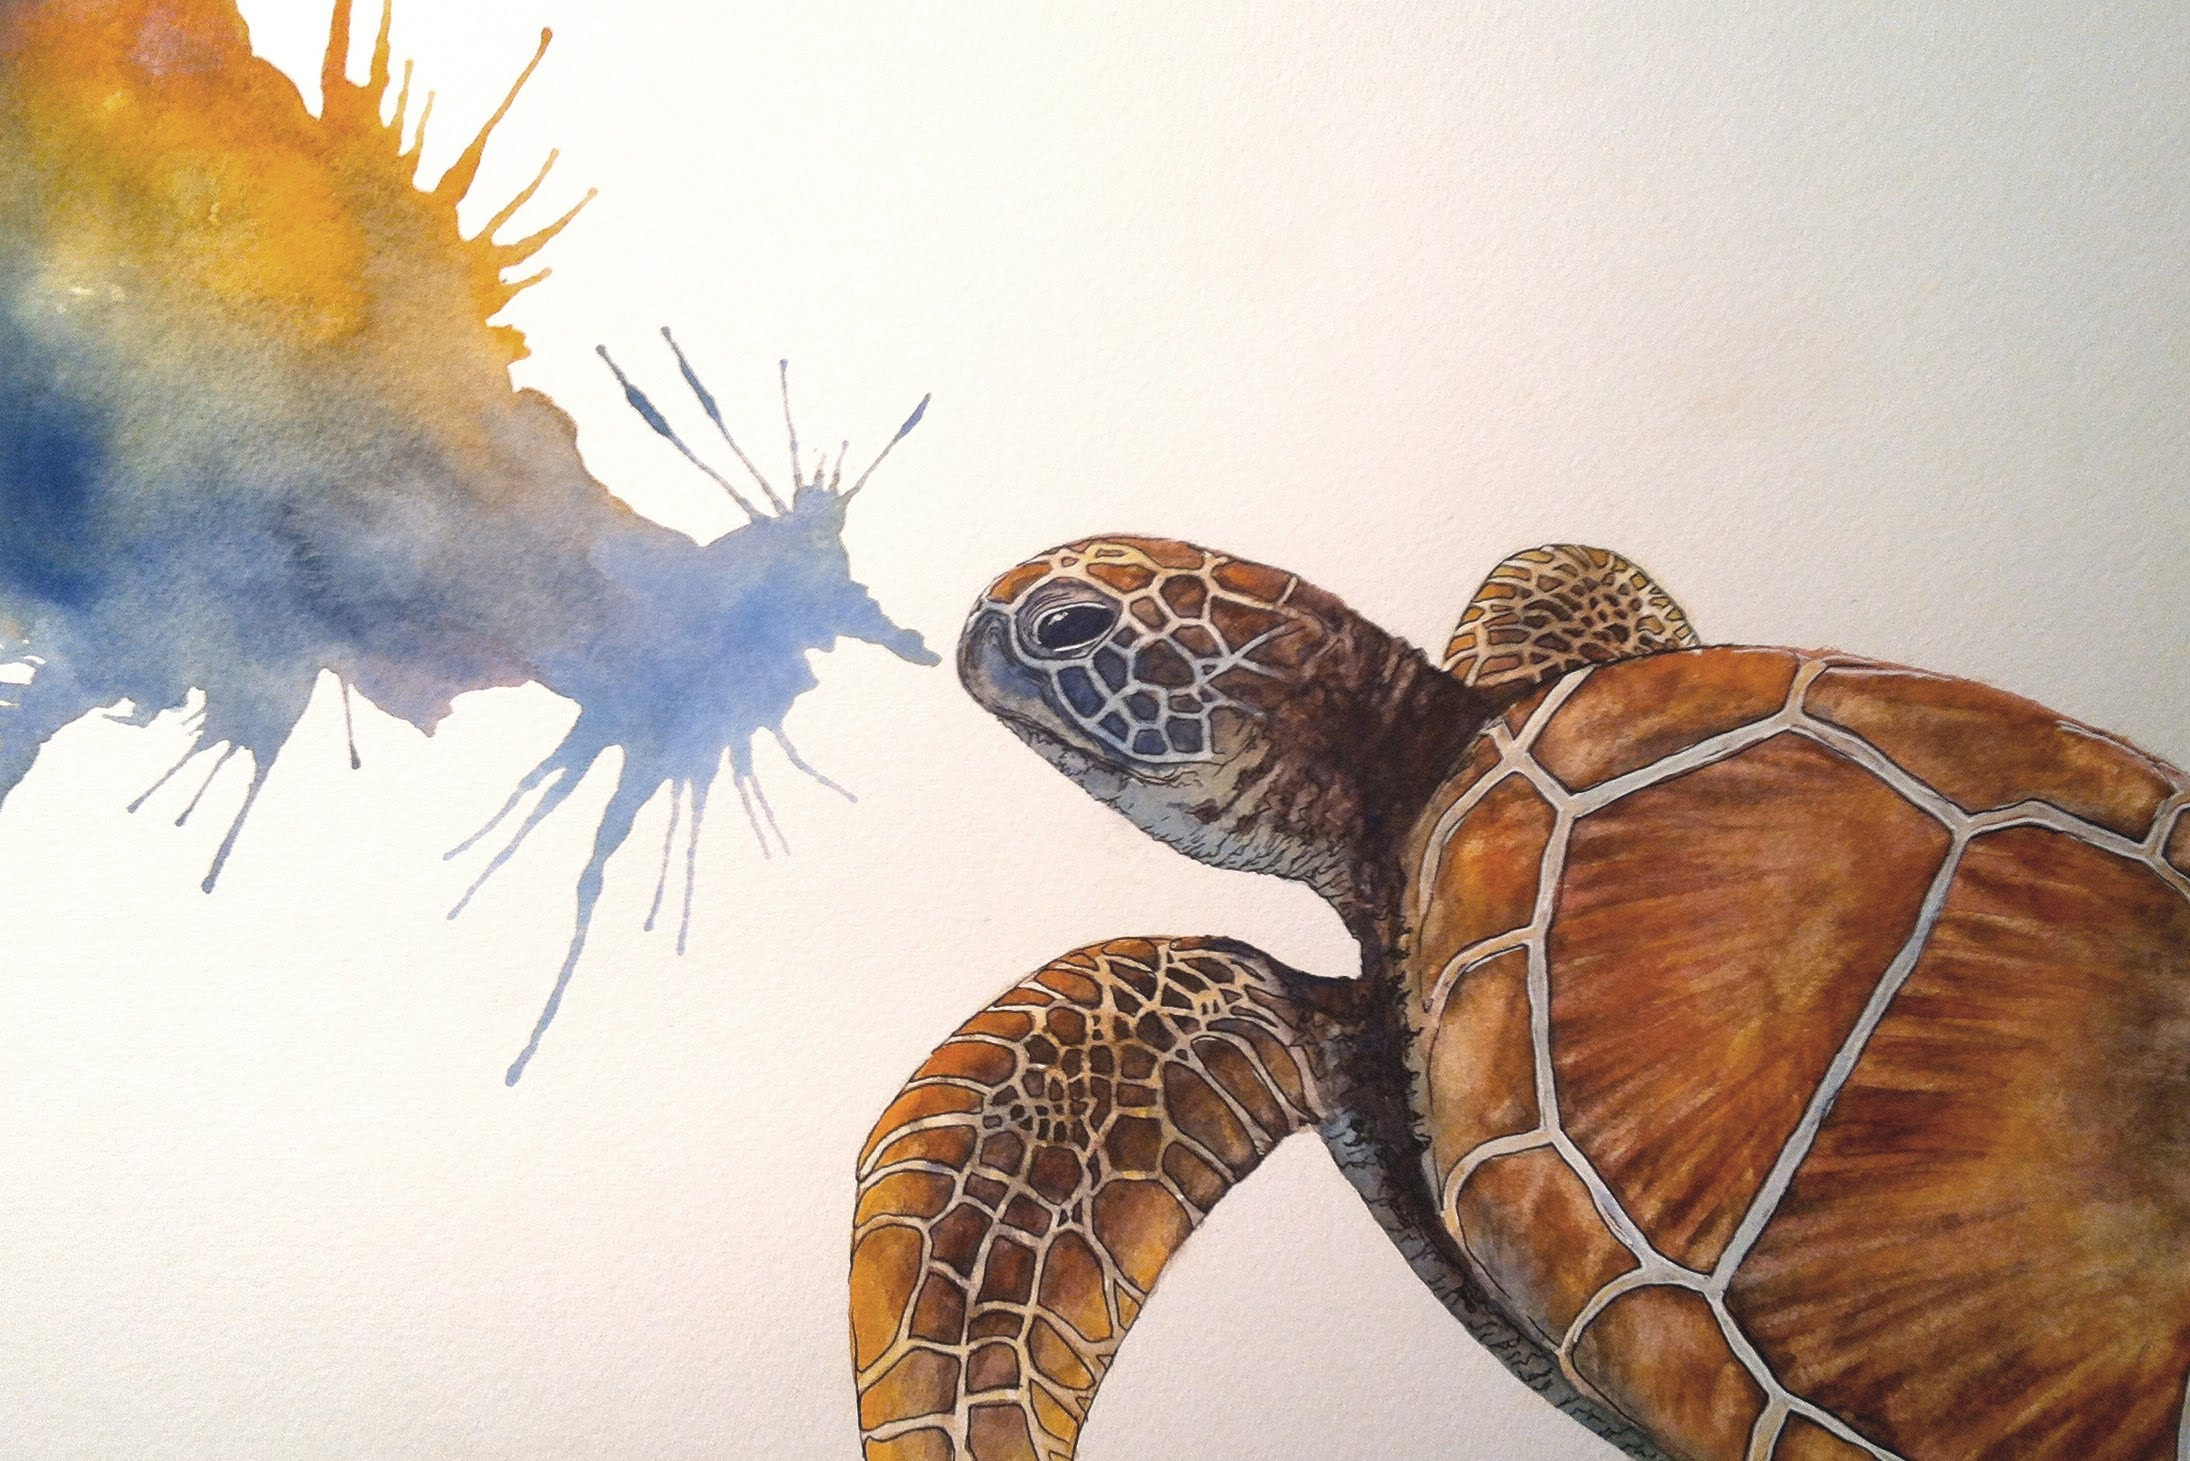 Drawn sea painted  painting Turtle YouTube watercolour